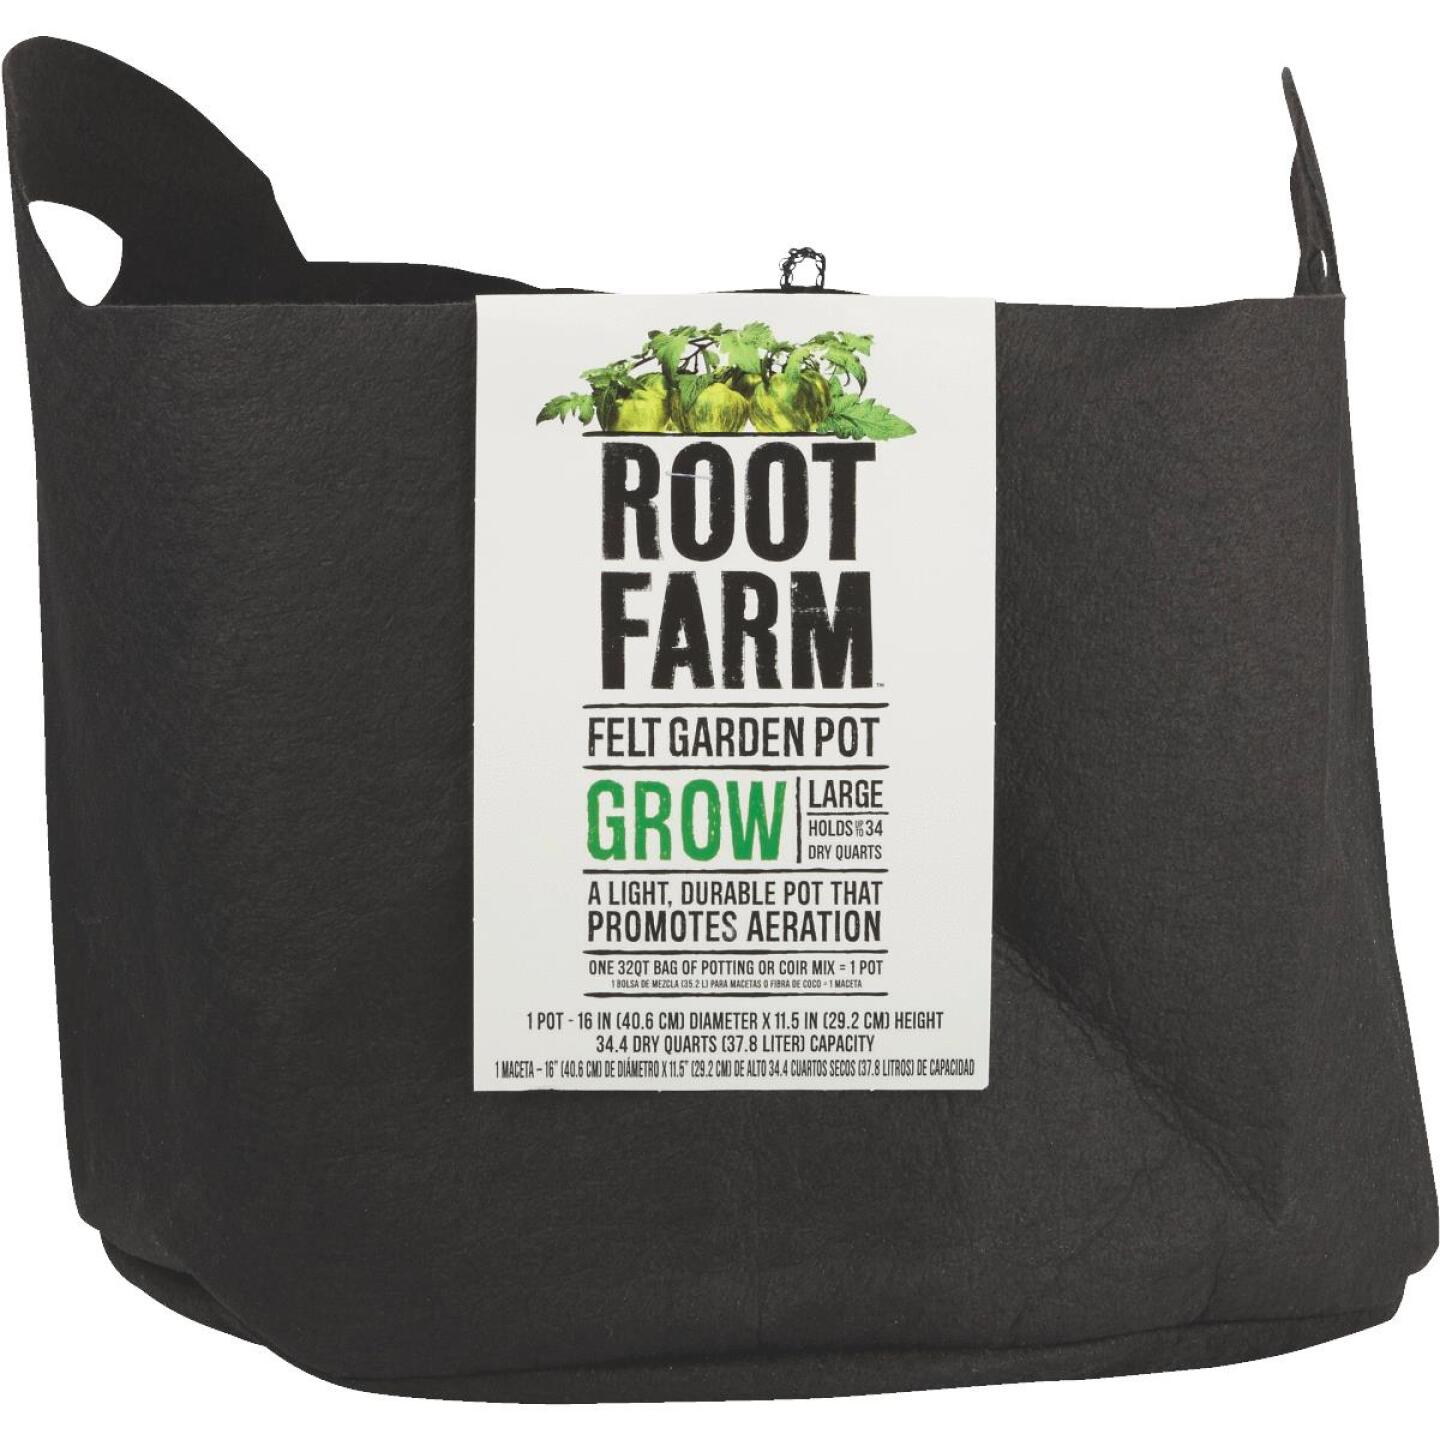 Root Farm Felt Large Garden Pot Image 2